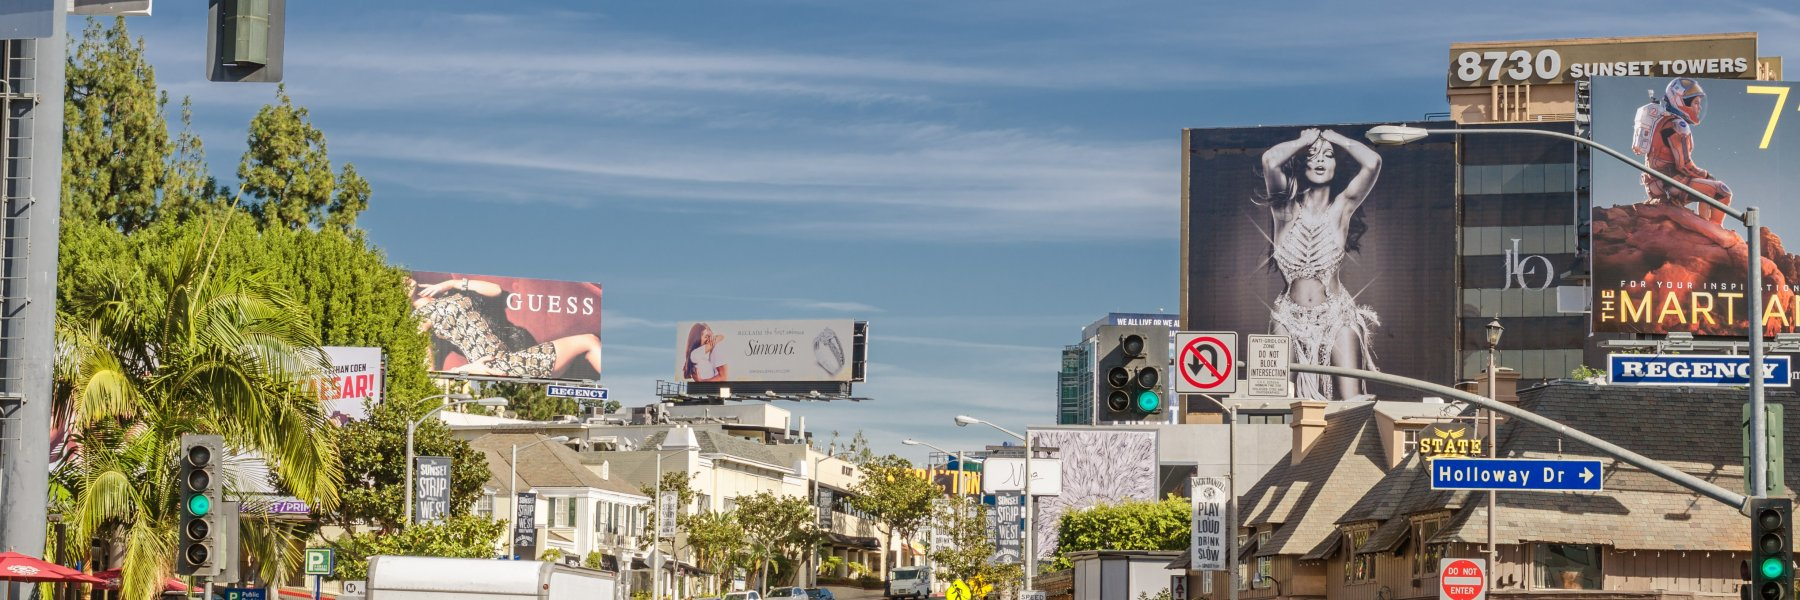 West Hollywood is an eclectic neighborhood in Los Angeles CA